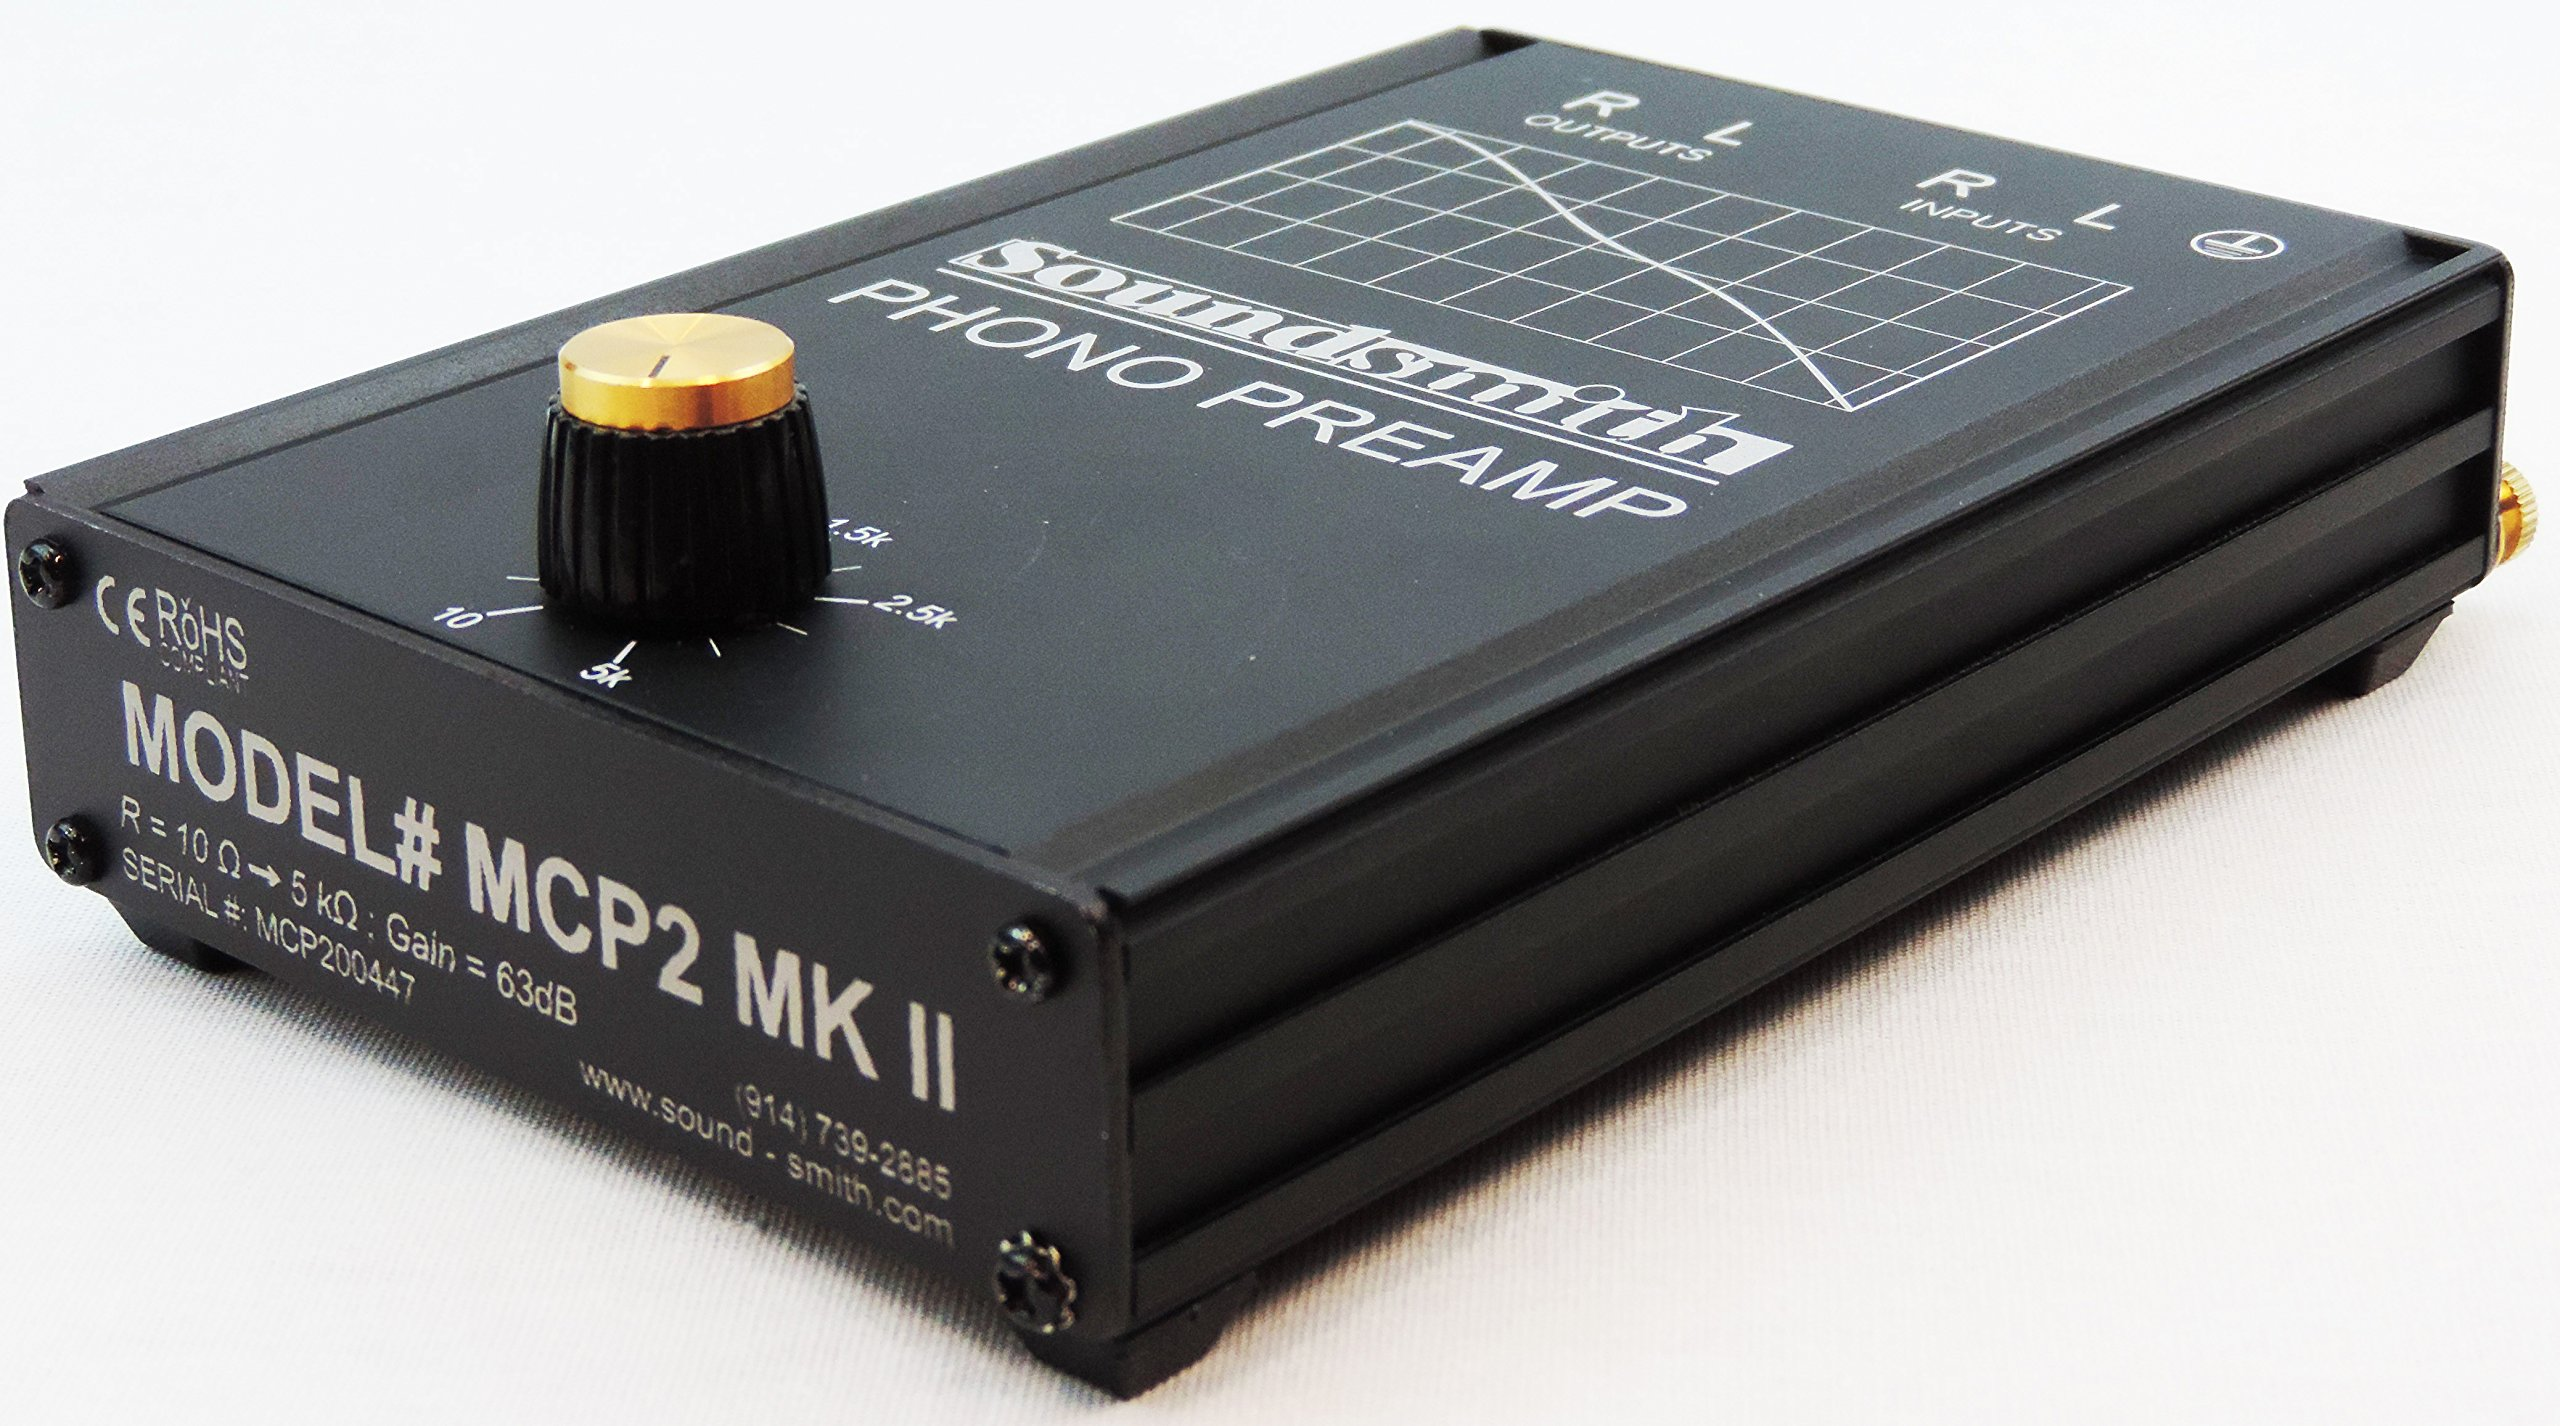 Soundsmith MCP2 MKII High-End Moving-Coil Phono Preamp with Variable Loading